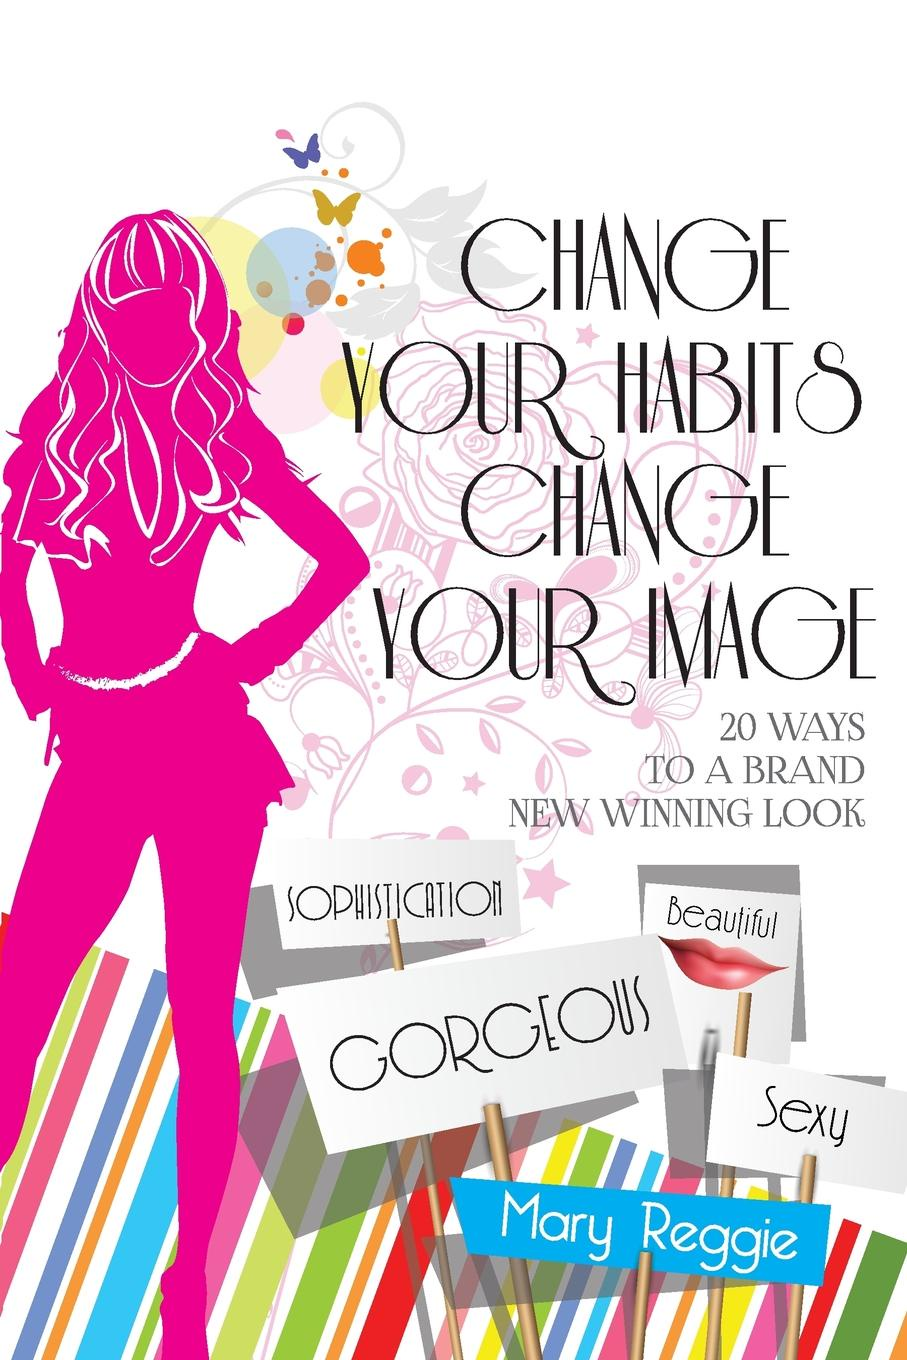 Mary Reggie CHANGE YOUR HABITS CHANGE YOUR IMAGE. 20 WAYS FOR A BRAND NEW WINNING LOOK